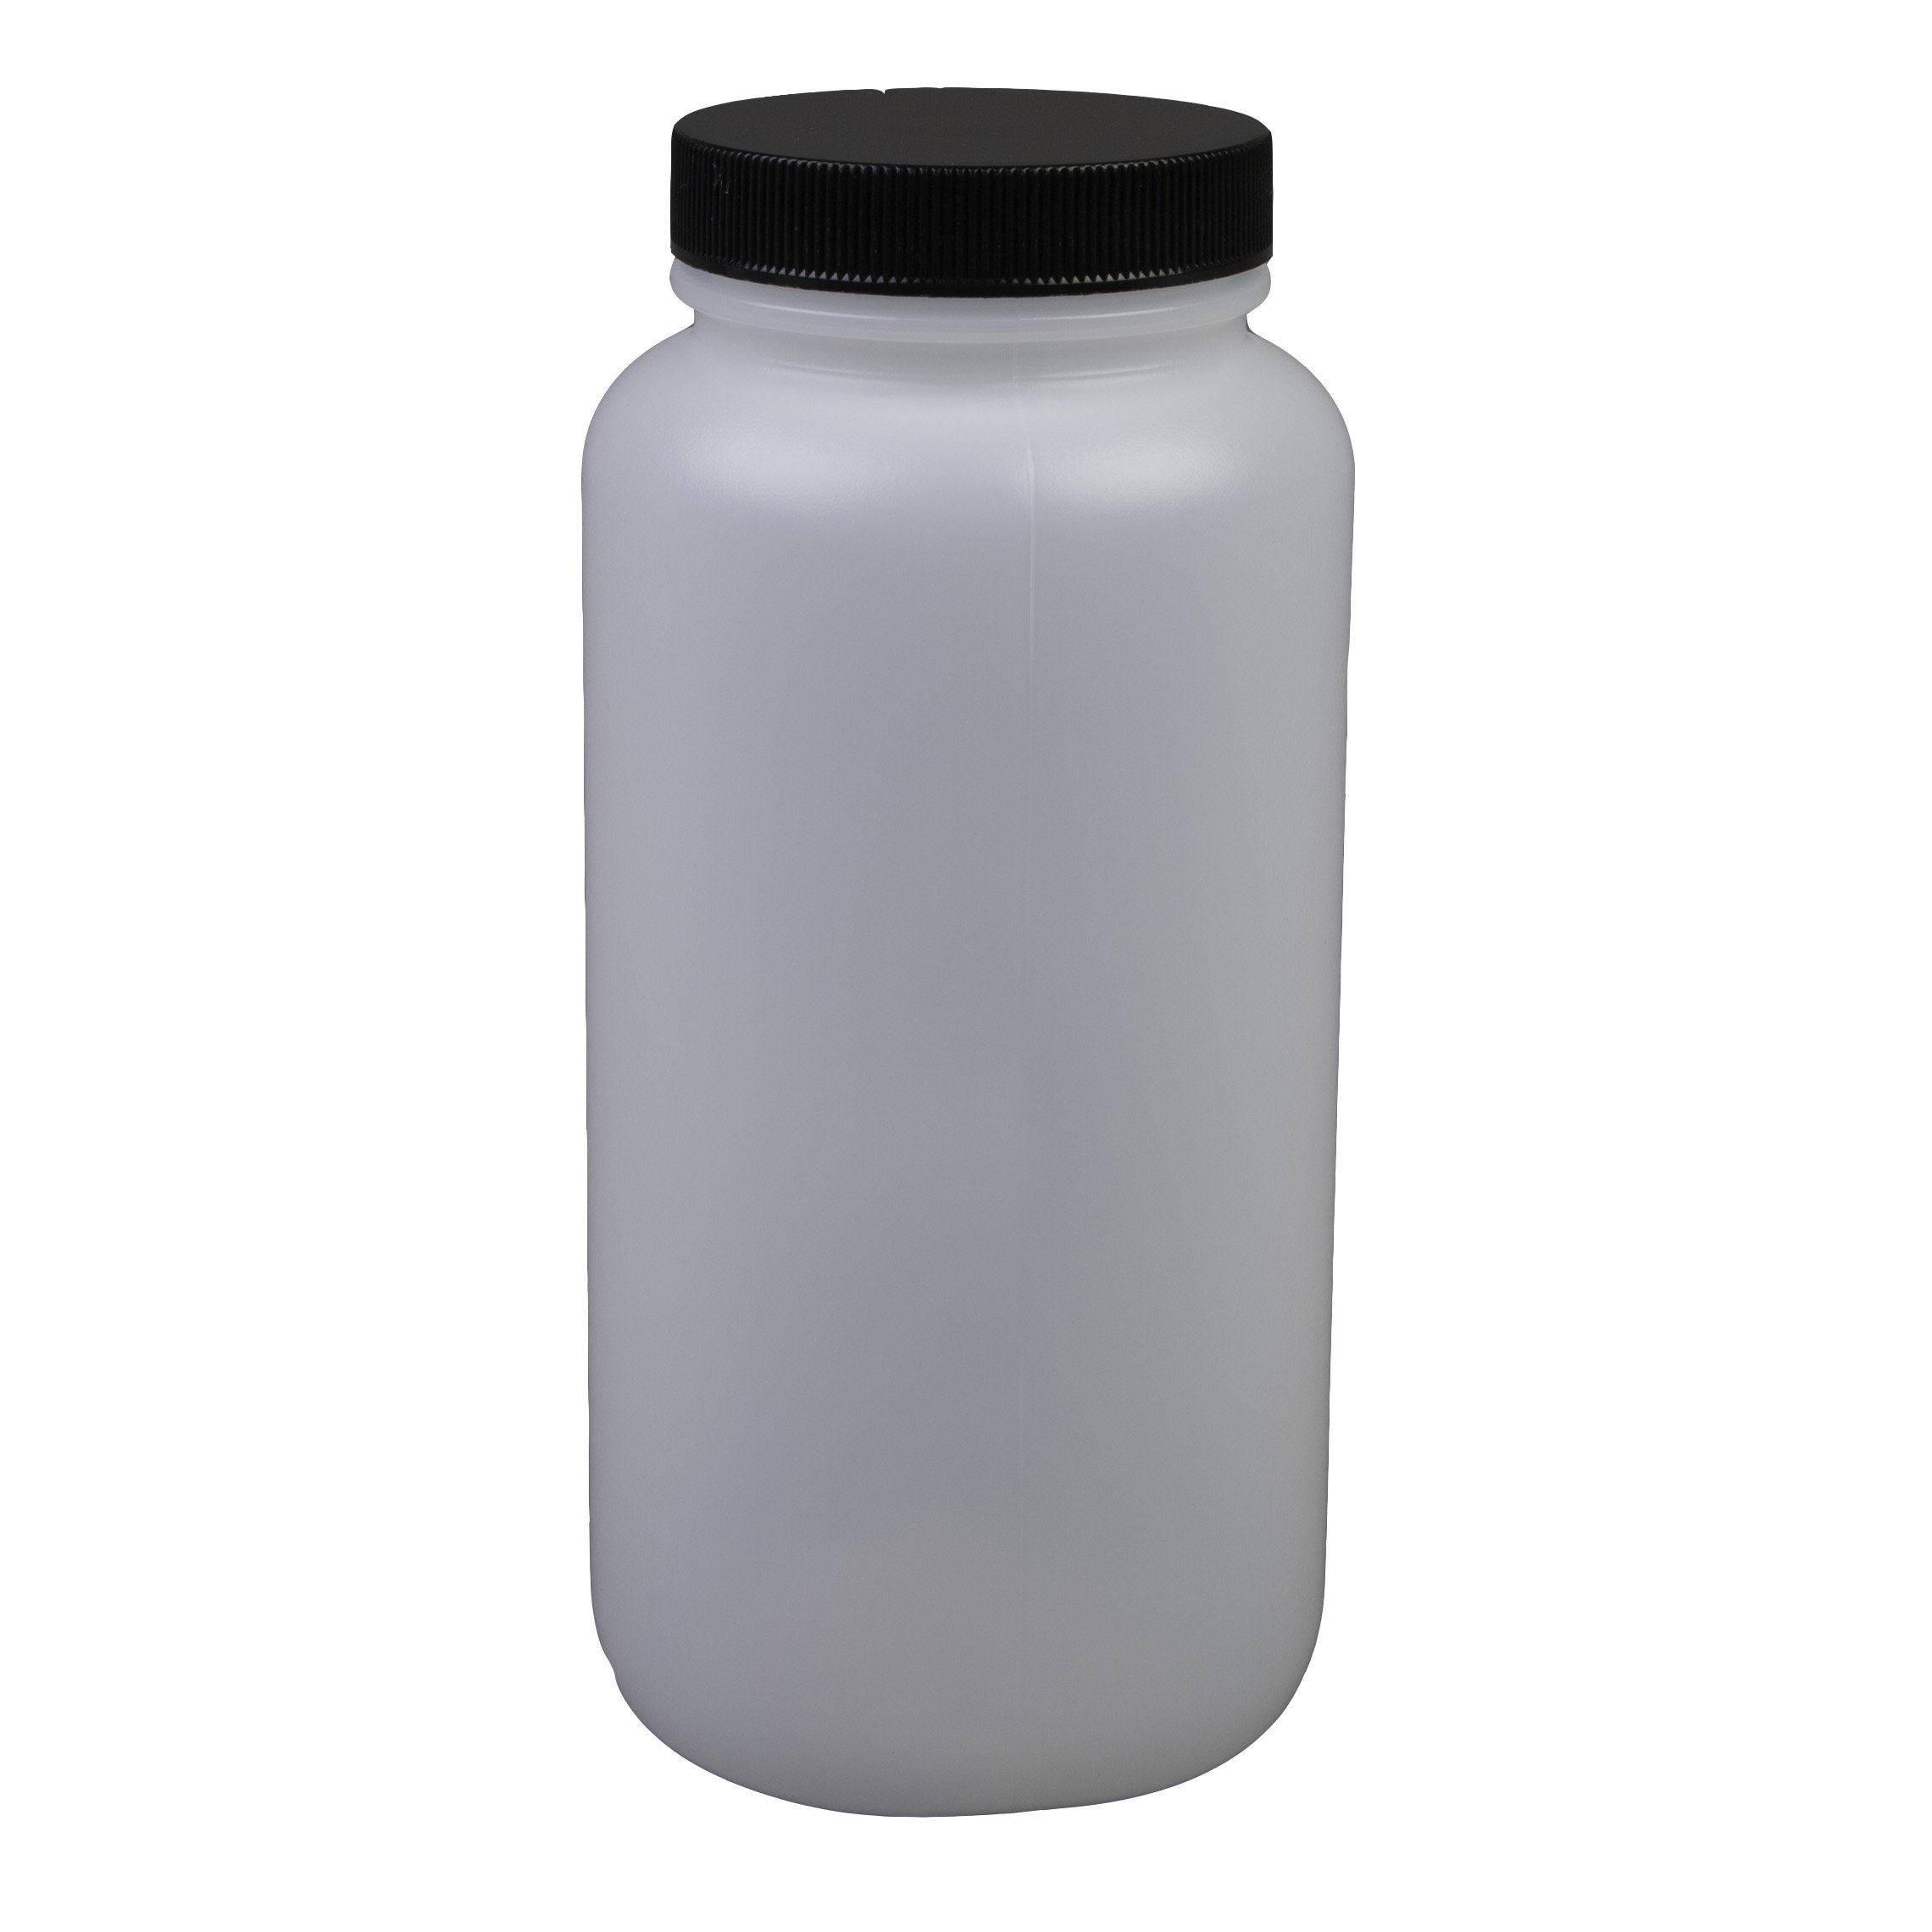 Consolidated Plastics 41676 Pharmaceutical Round Bottle with Cap, HDPE, 500cc., 12 Piece